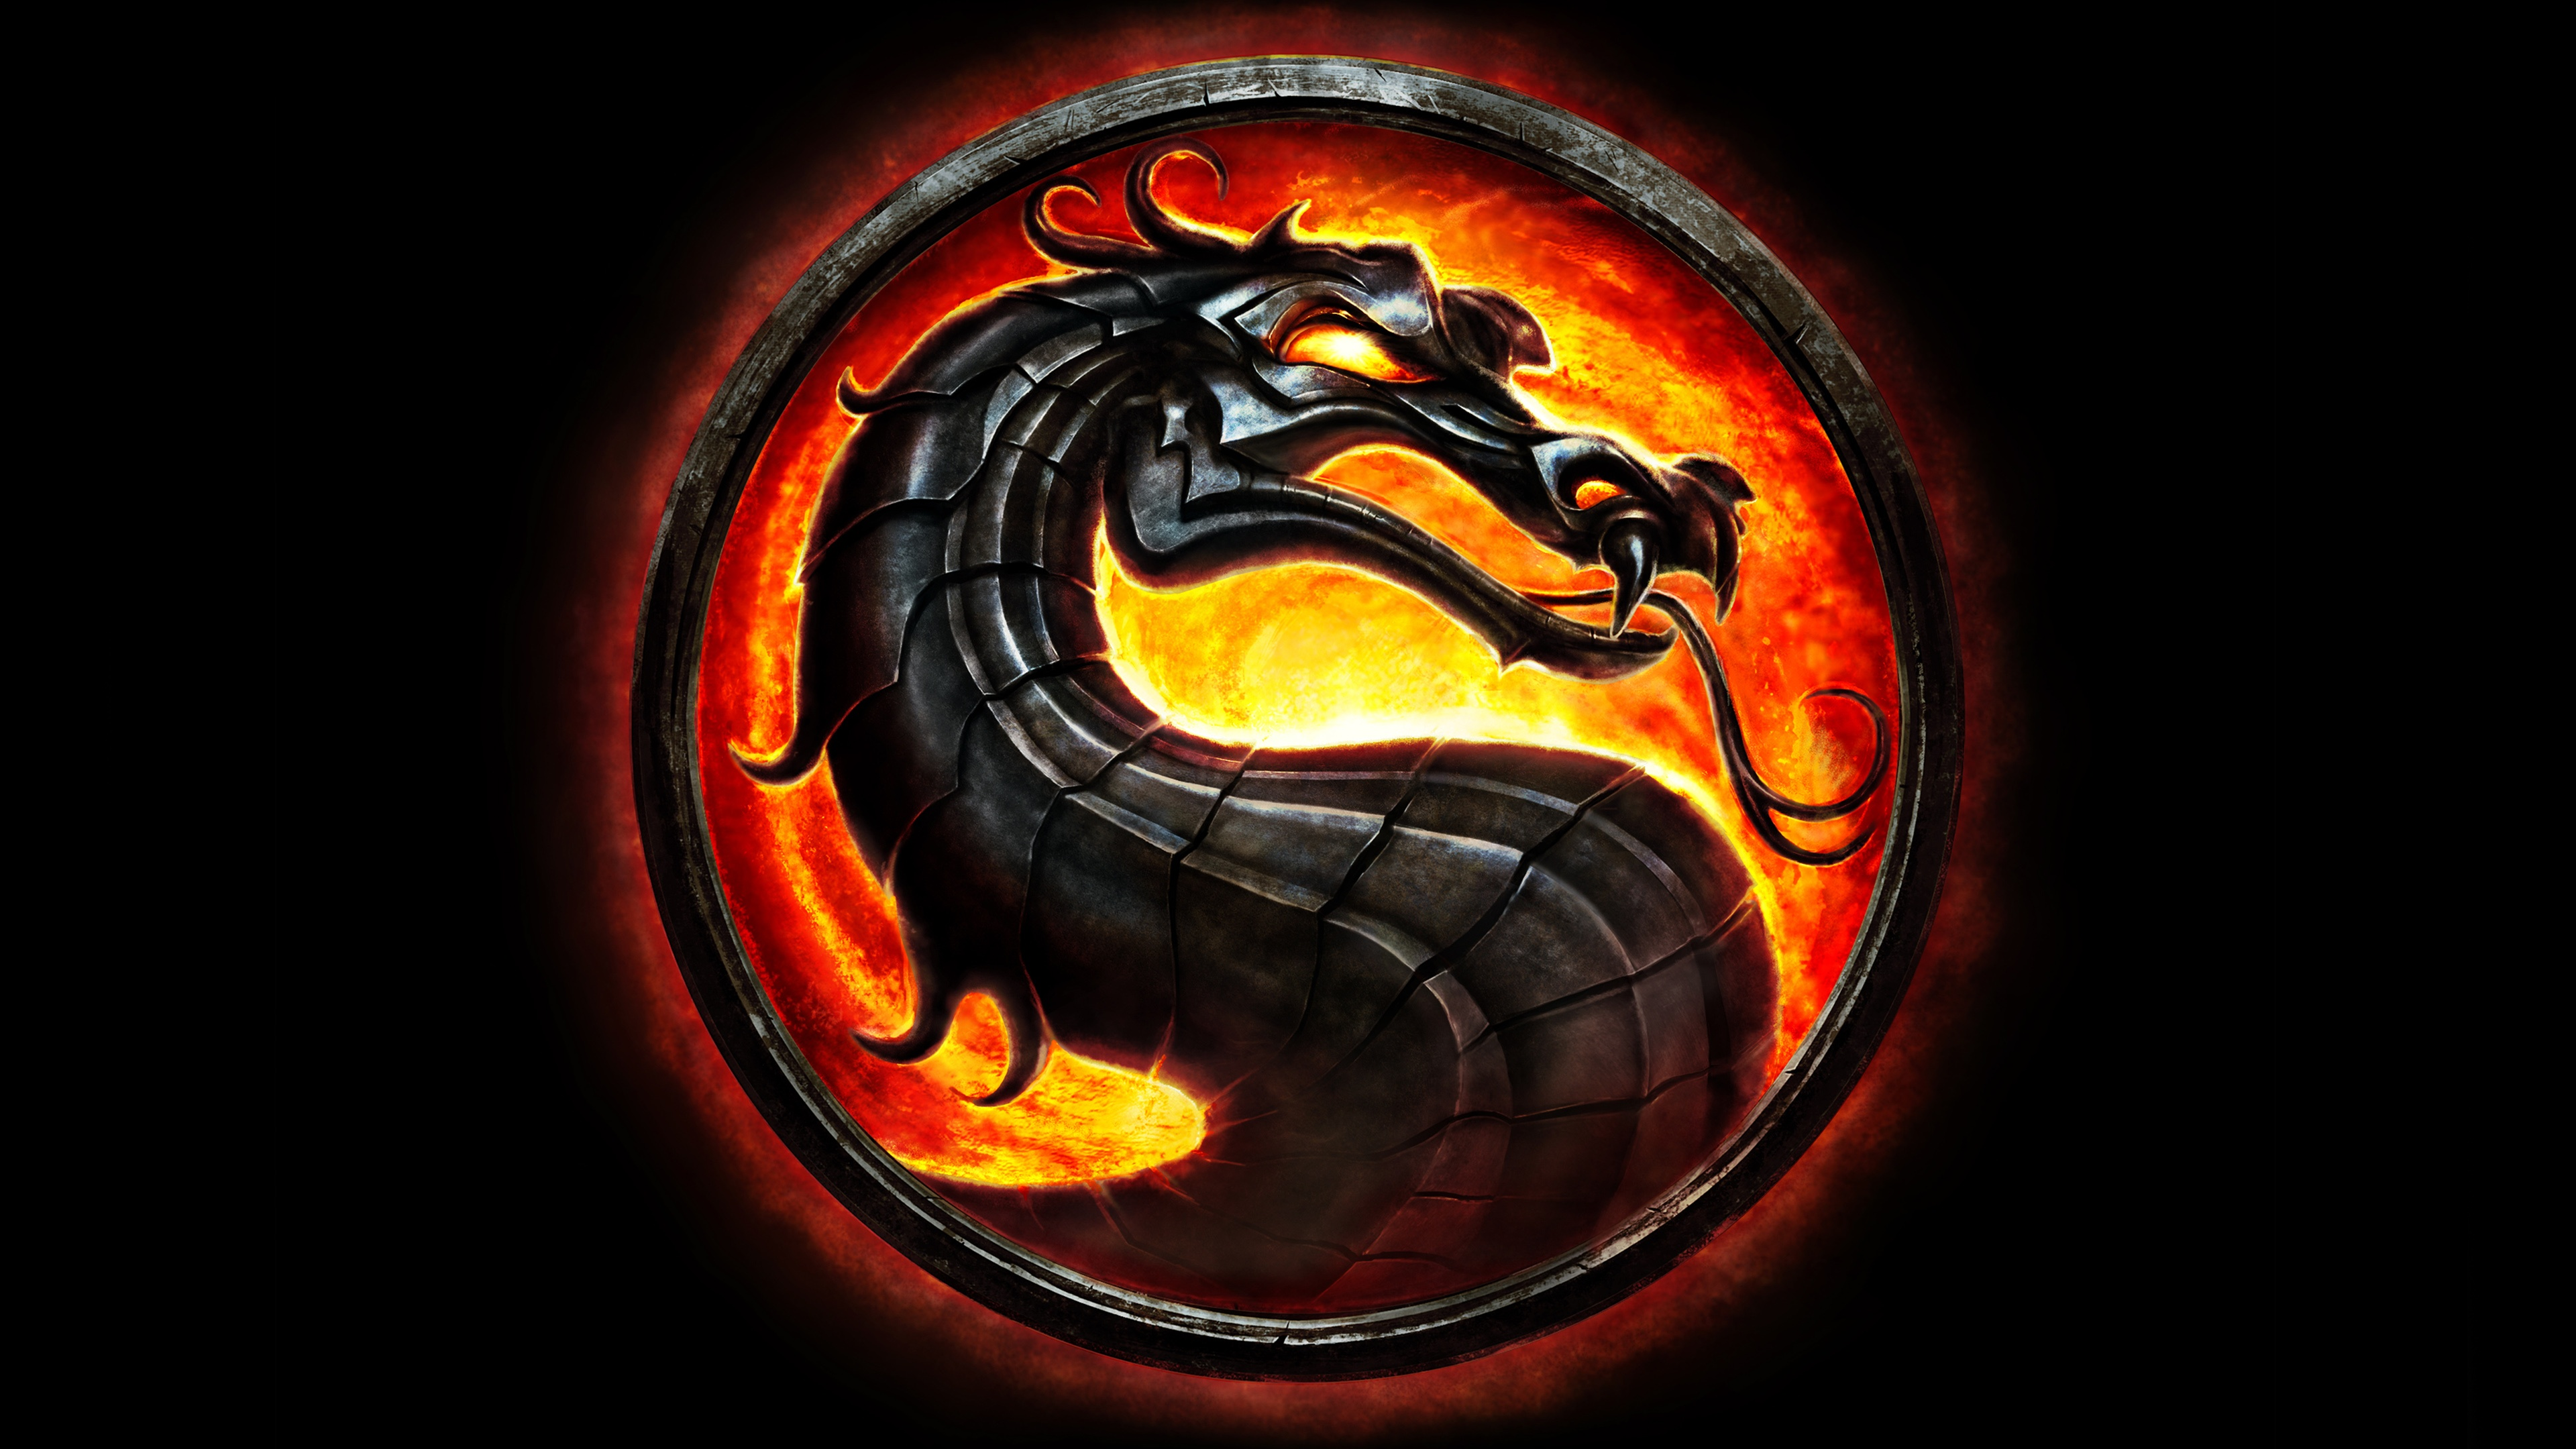 46 4k Mortal Kombat Wallpaper On Wallpapersafari